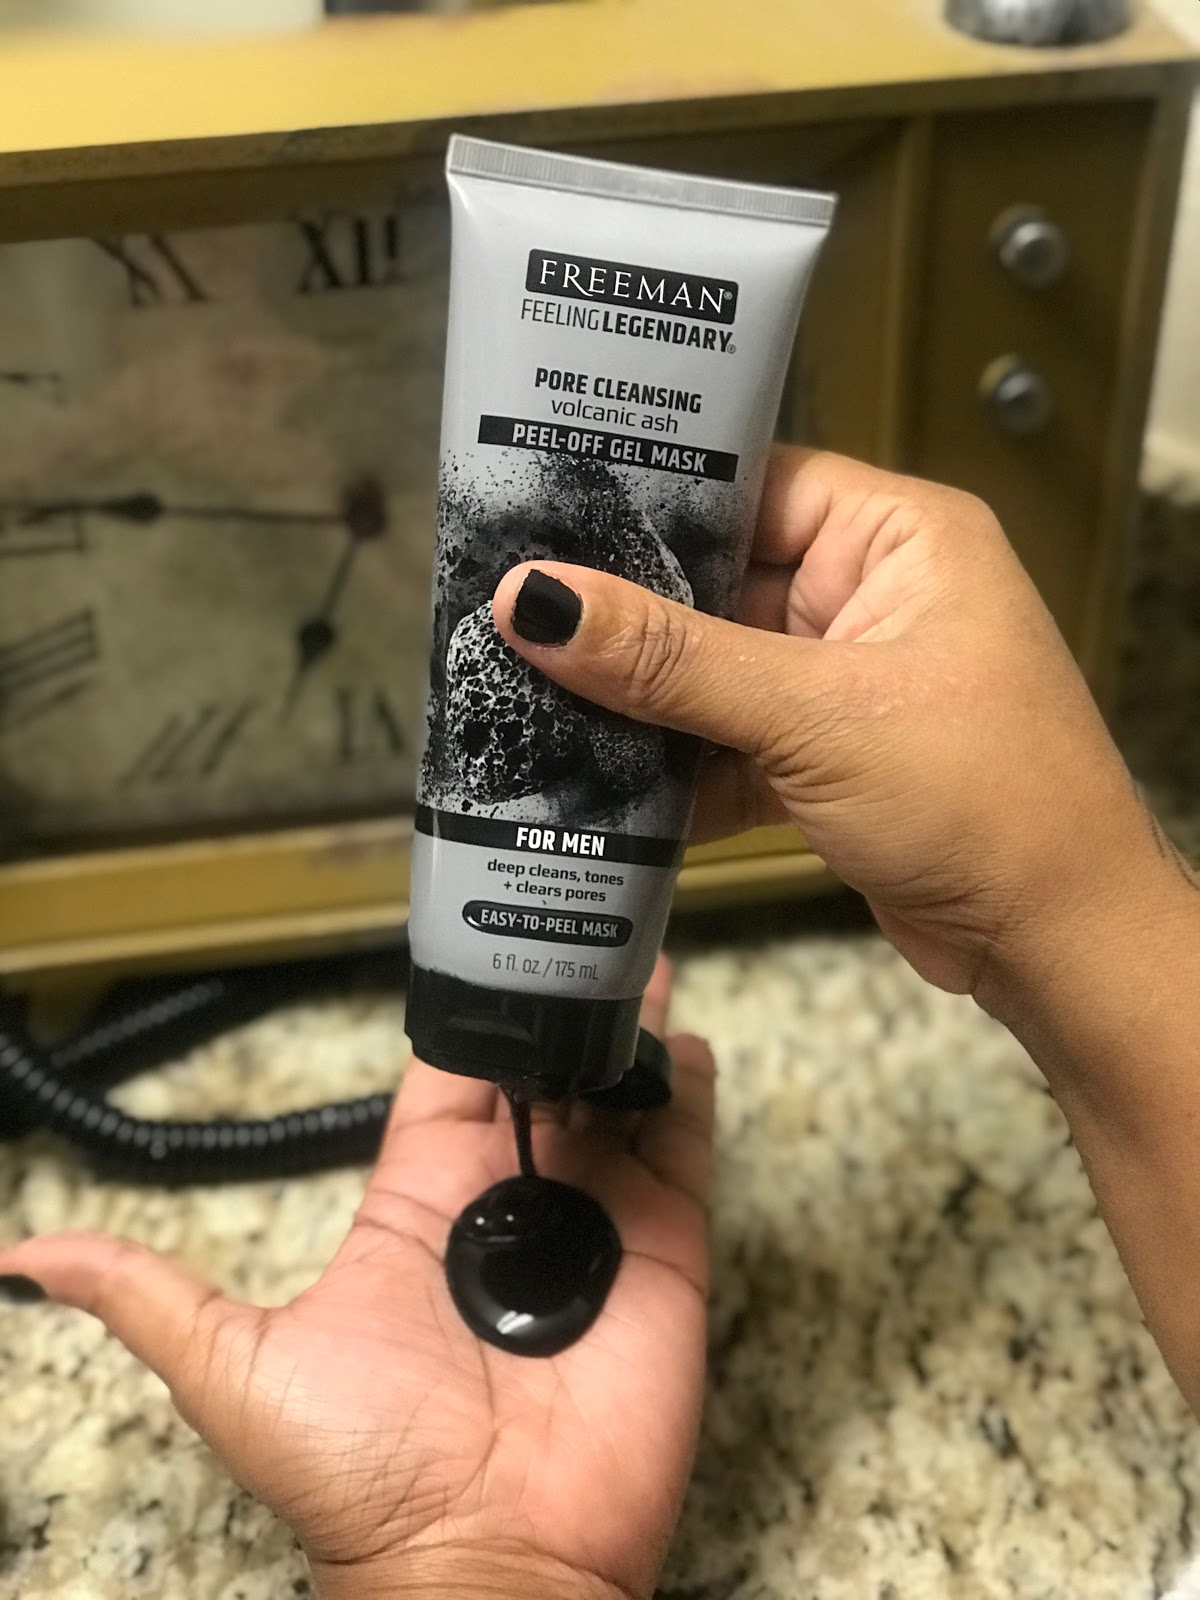 I Tried A New Face Mask! Tried A Men's Face Mask. Feel Good Beauty Bits